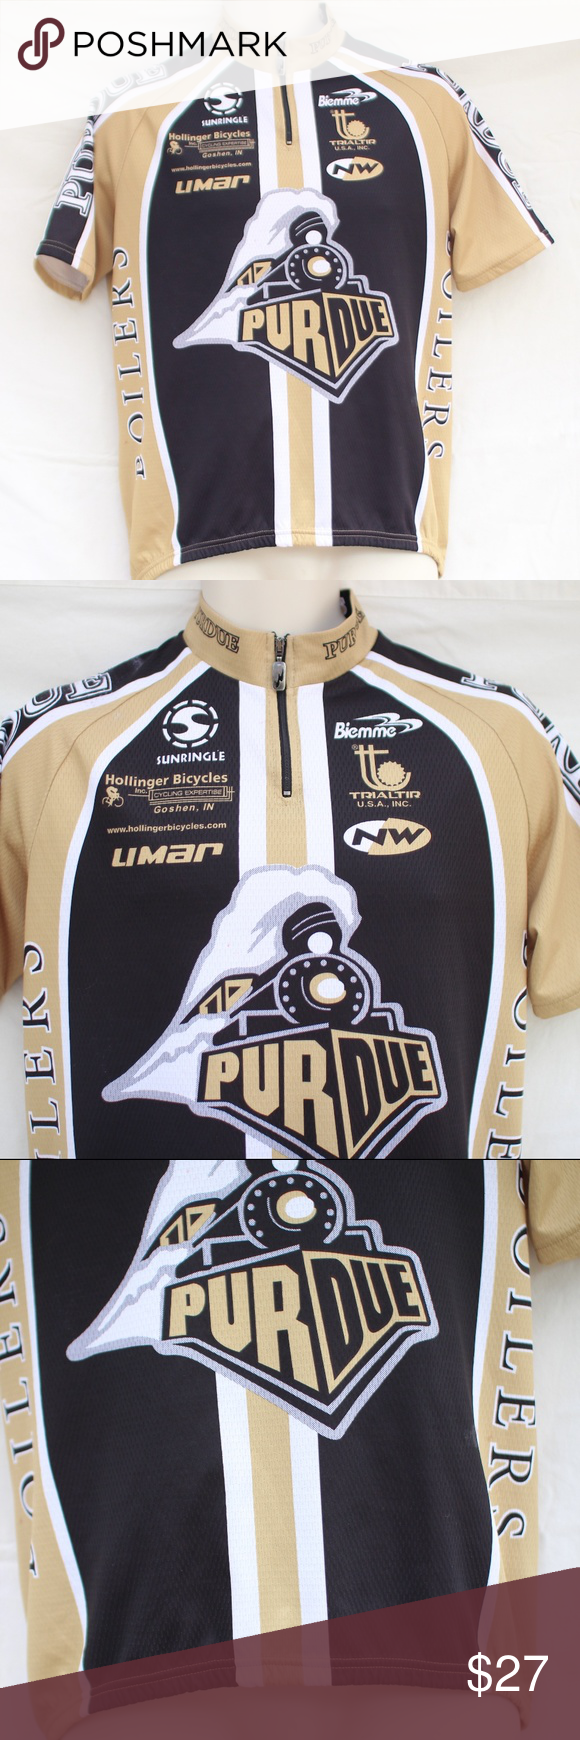 Purdue Boilers Men's Cycling Jersey Size Large Mens